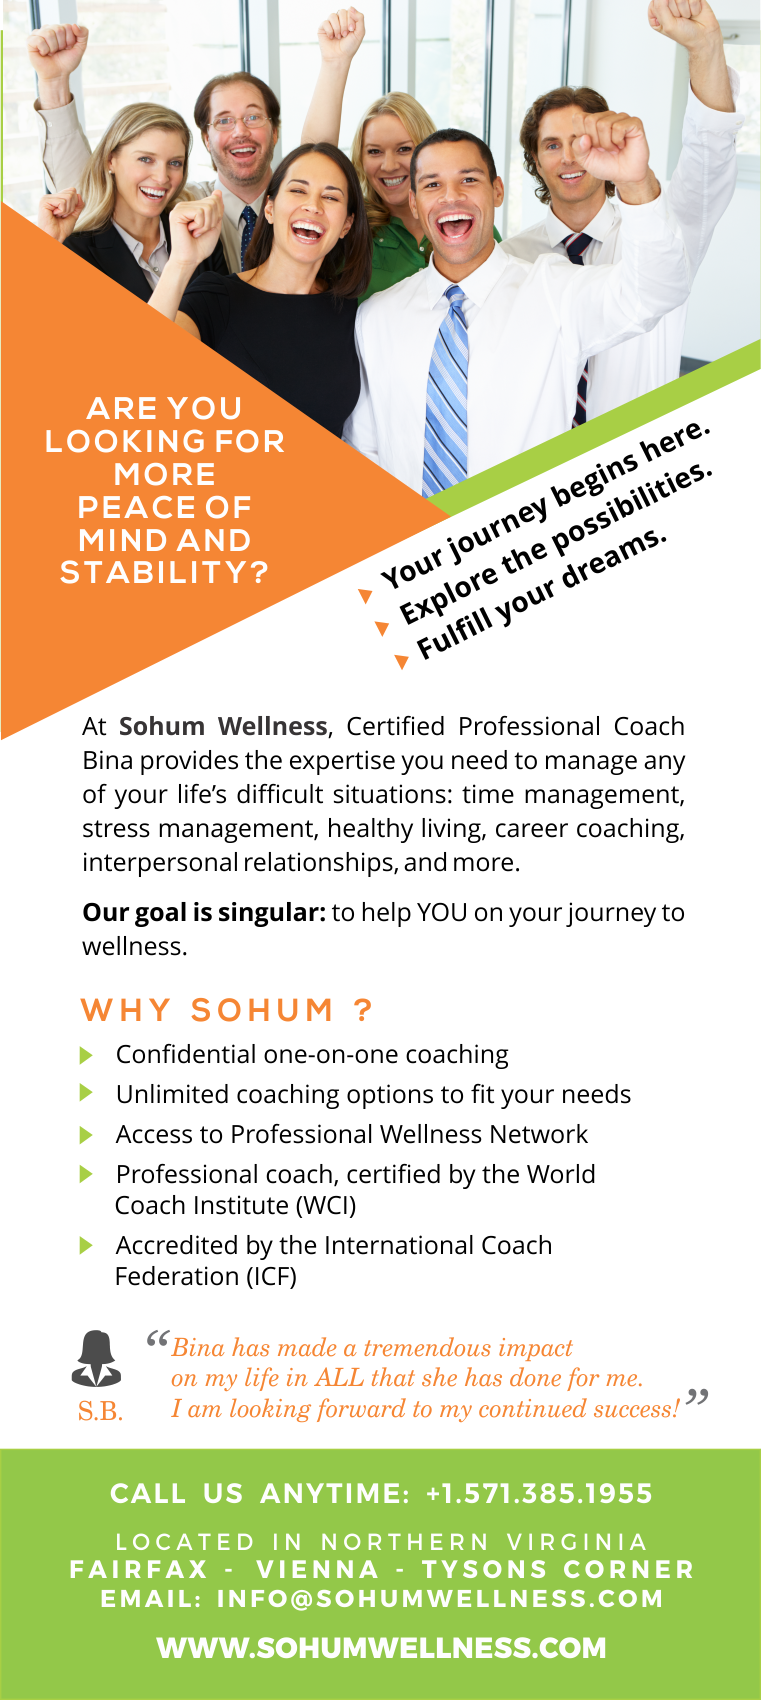 At Sohum Wellness Certified Professional Coach Bina